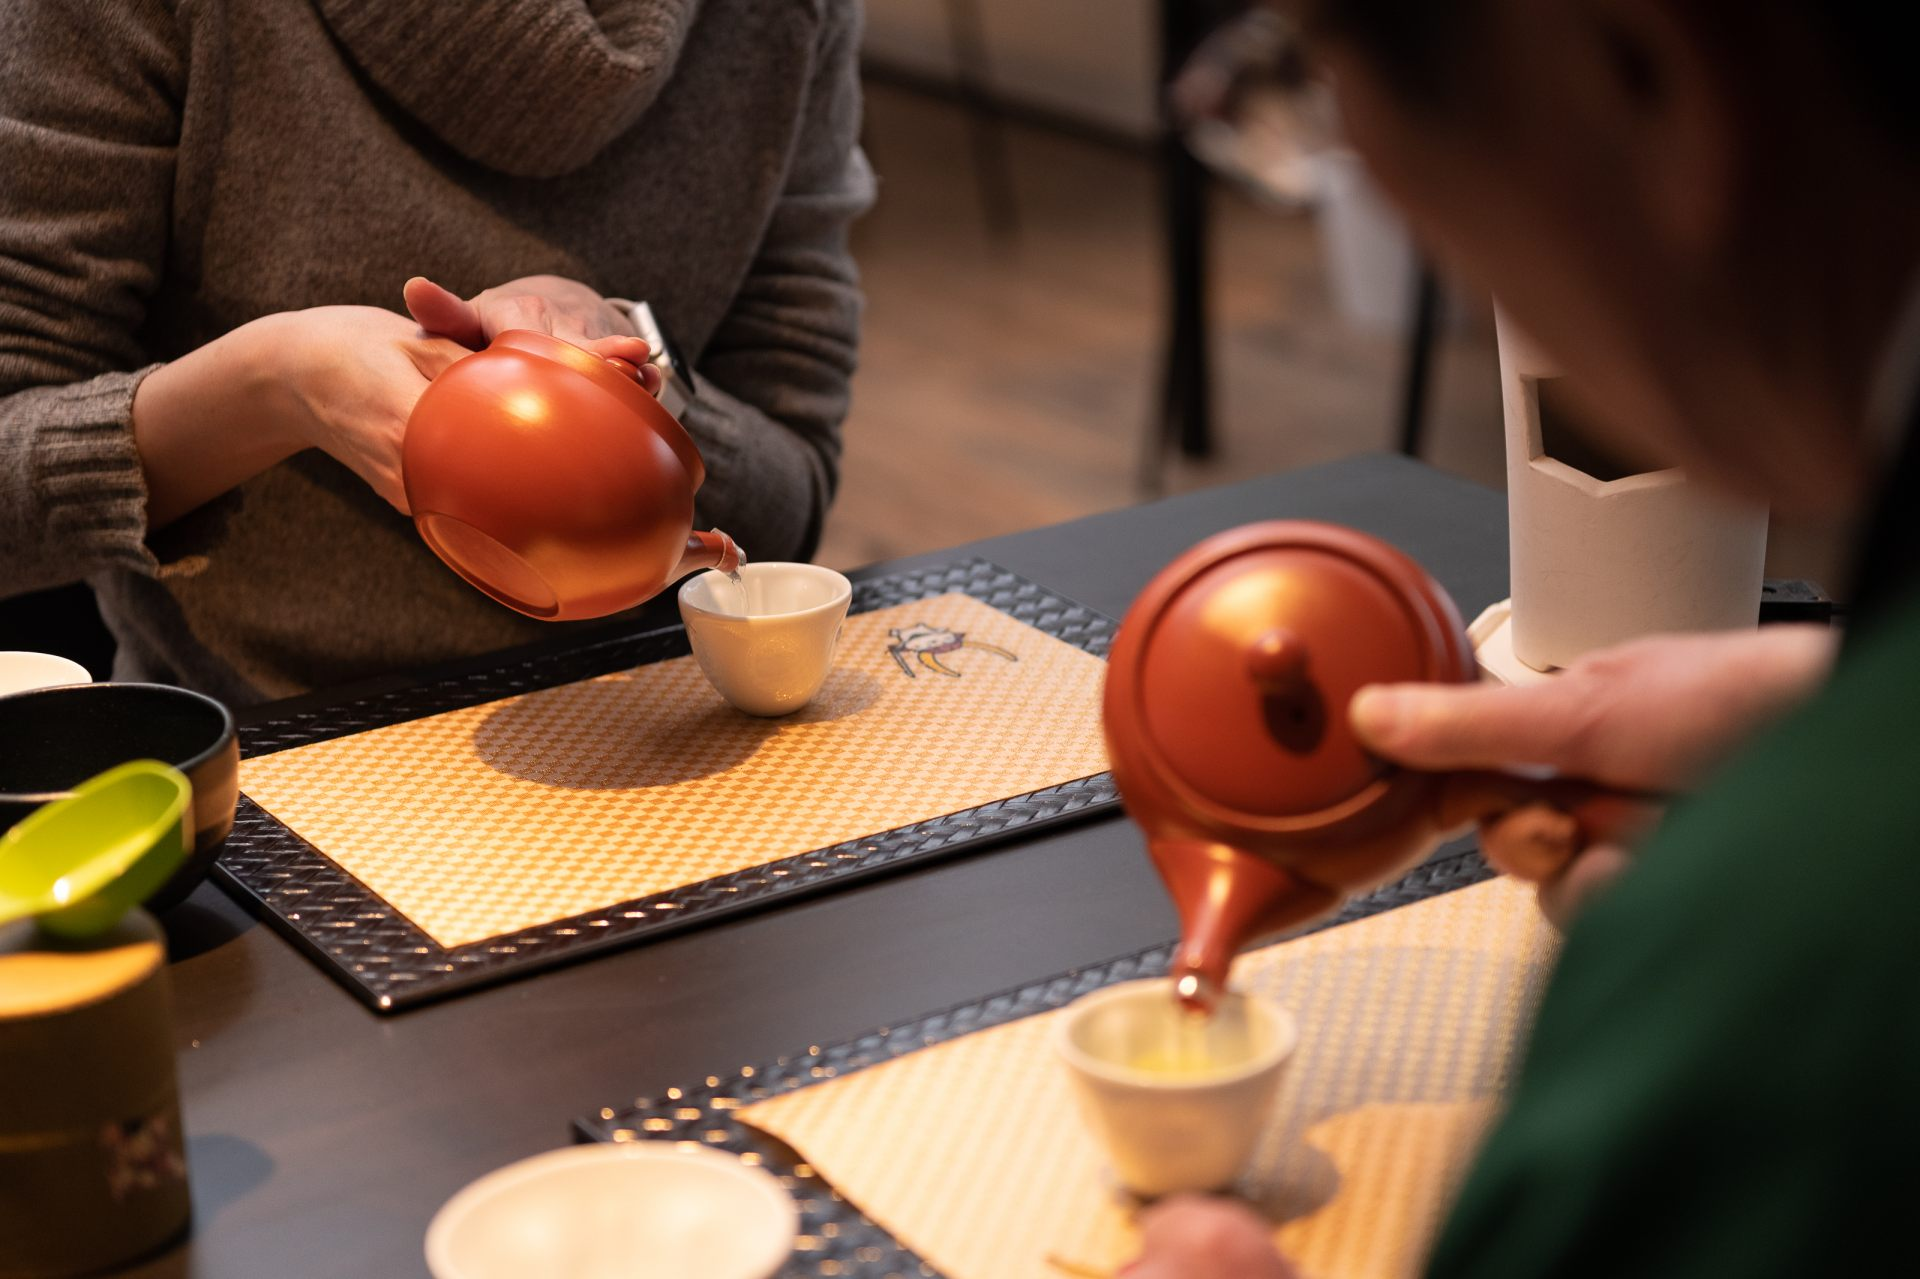 The handle being on the side of the small teapot is unique to Japan! You can learn about Japanese culture through the utensils used.